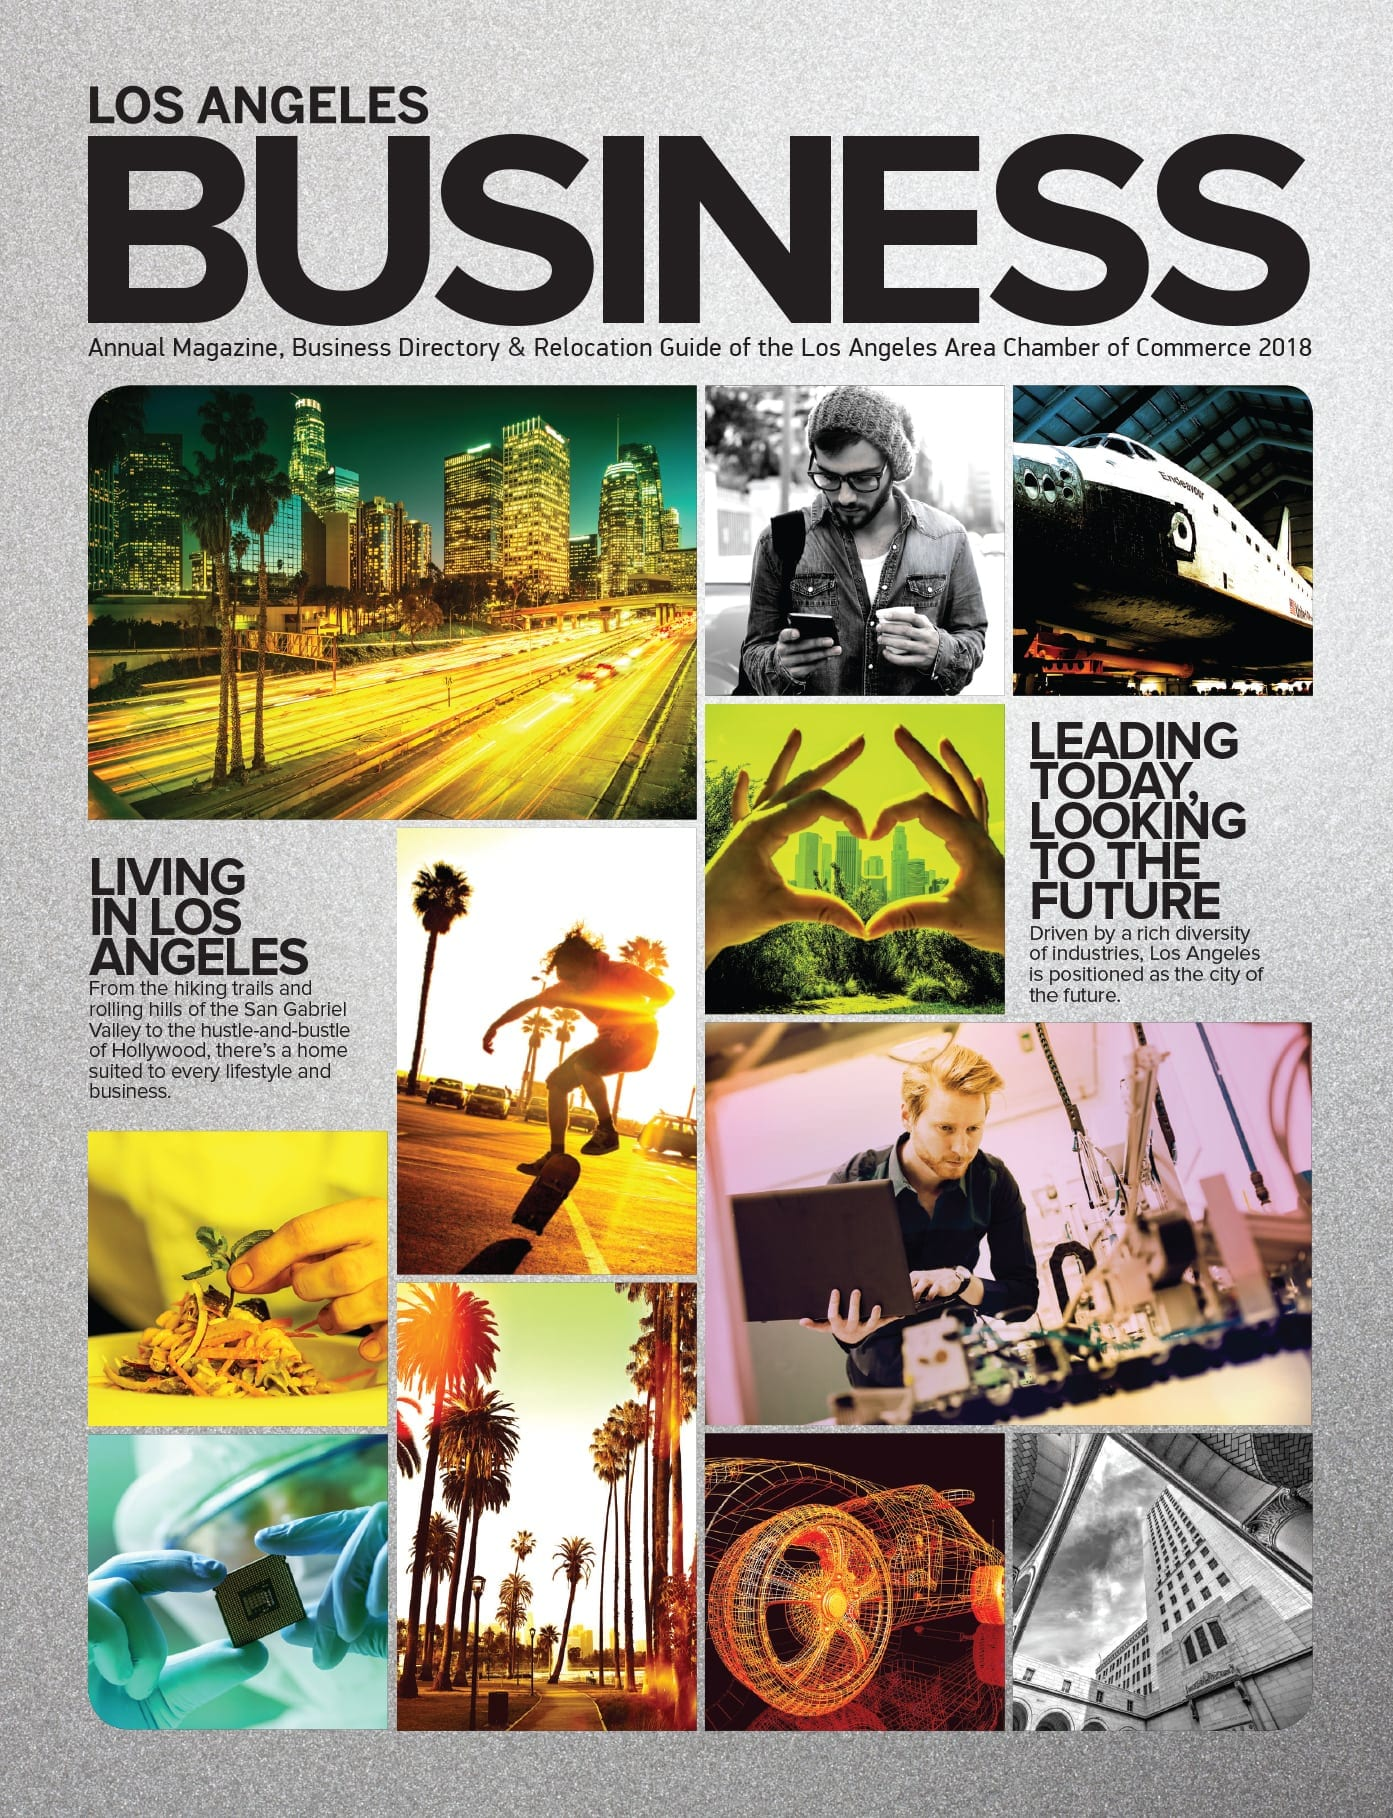 Los Angeles Area Chamber of Commerce Annual Business Directory